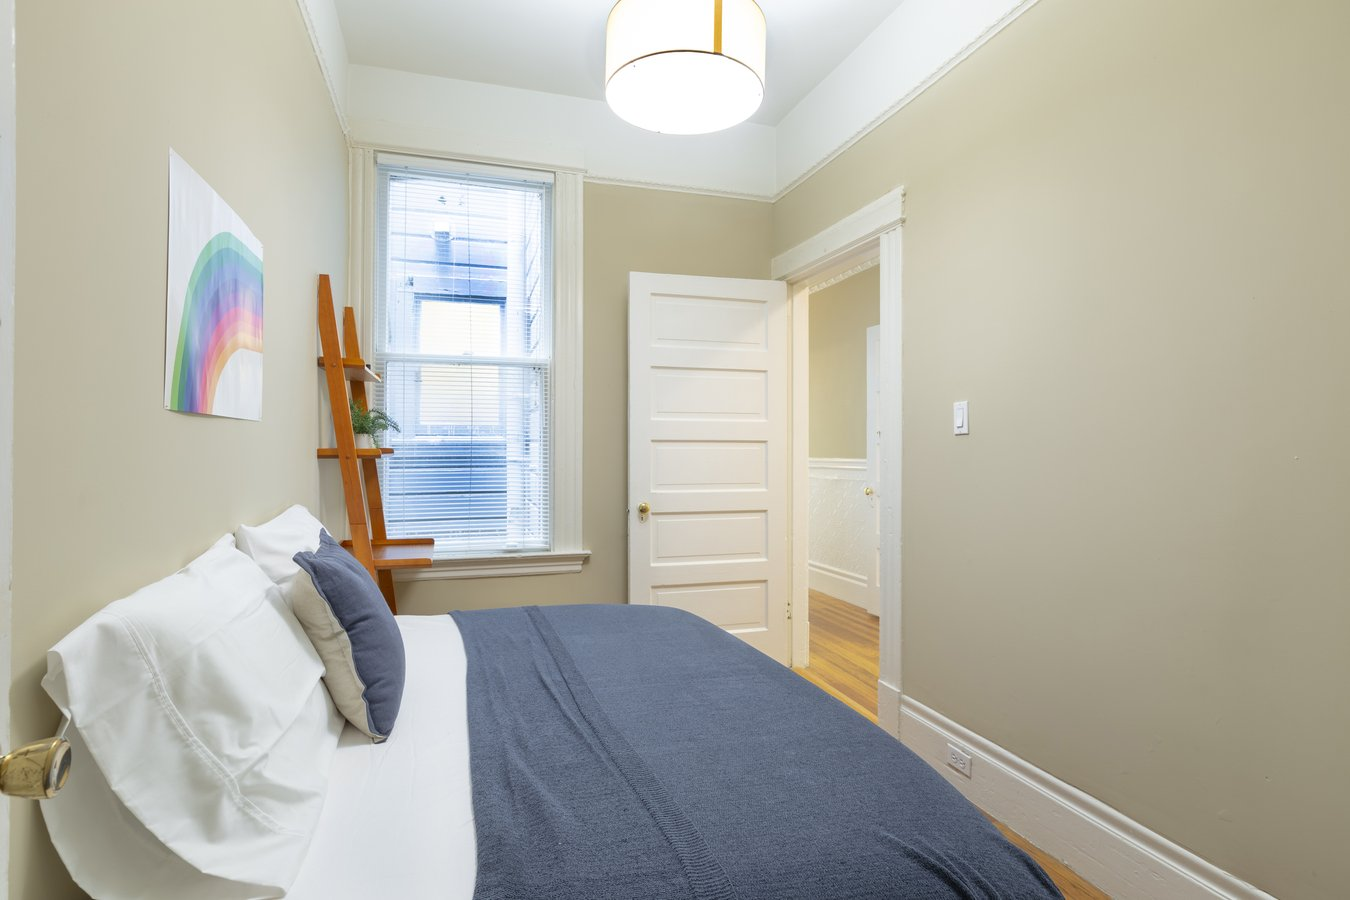 1 Bedroom 1 Bathroom House for rent at Ashbury St & Haight St Coliving in San Francisco, CA